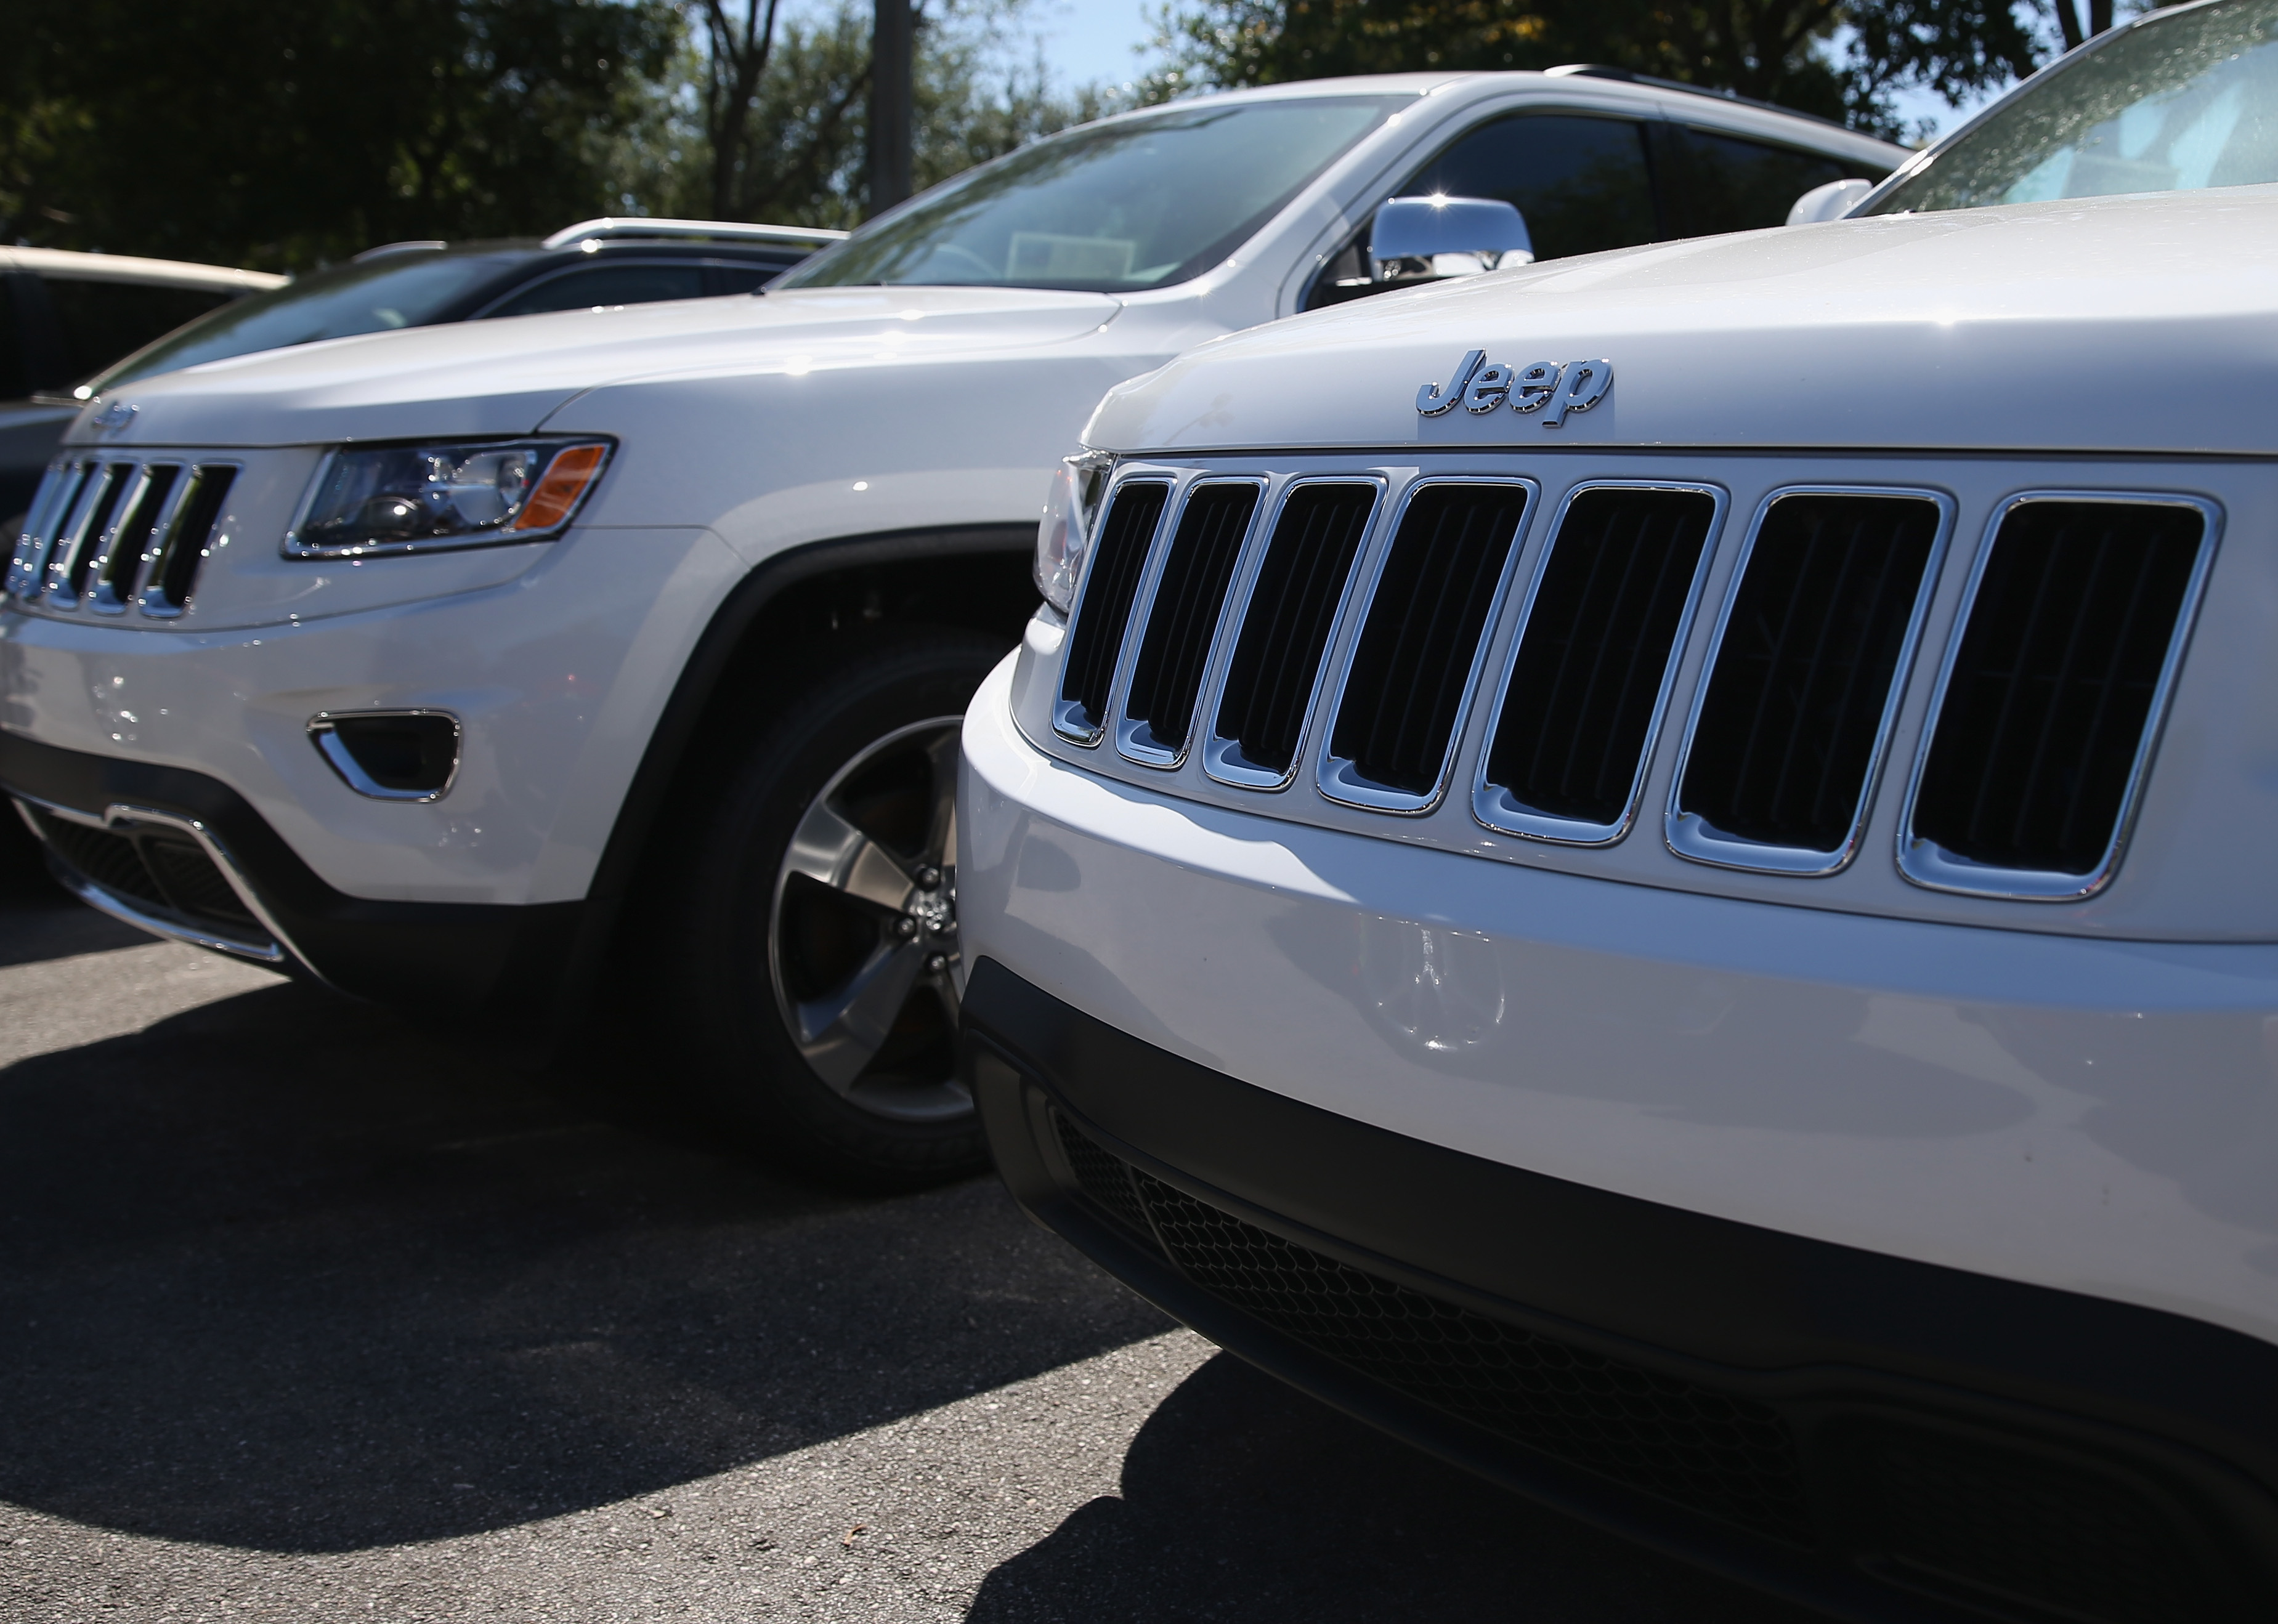 Chrysler Issues Recall On 850,000 Sport Utility Vehicles